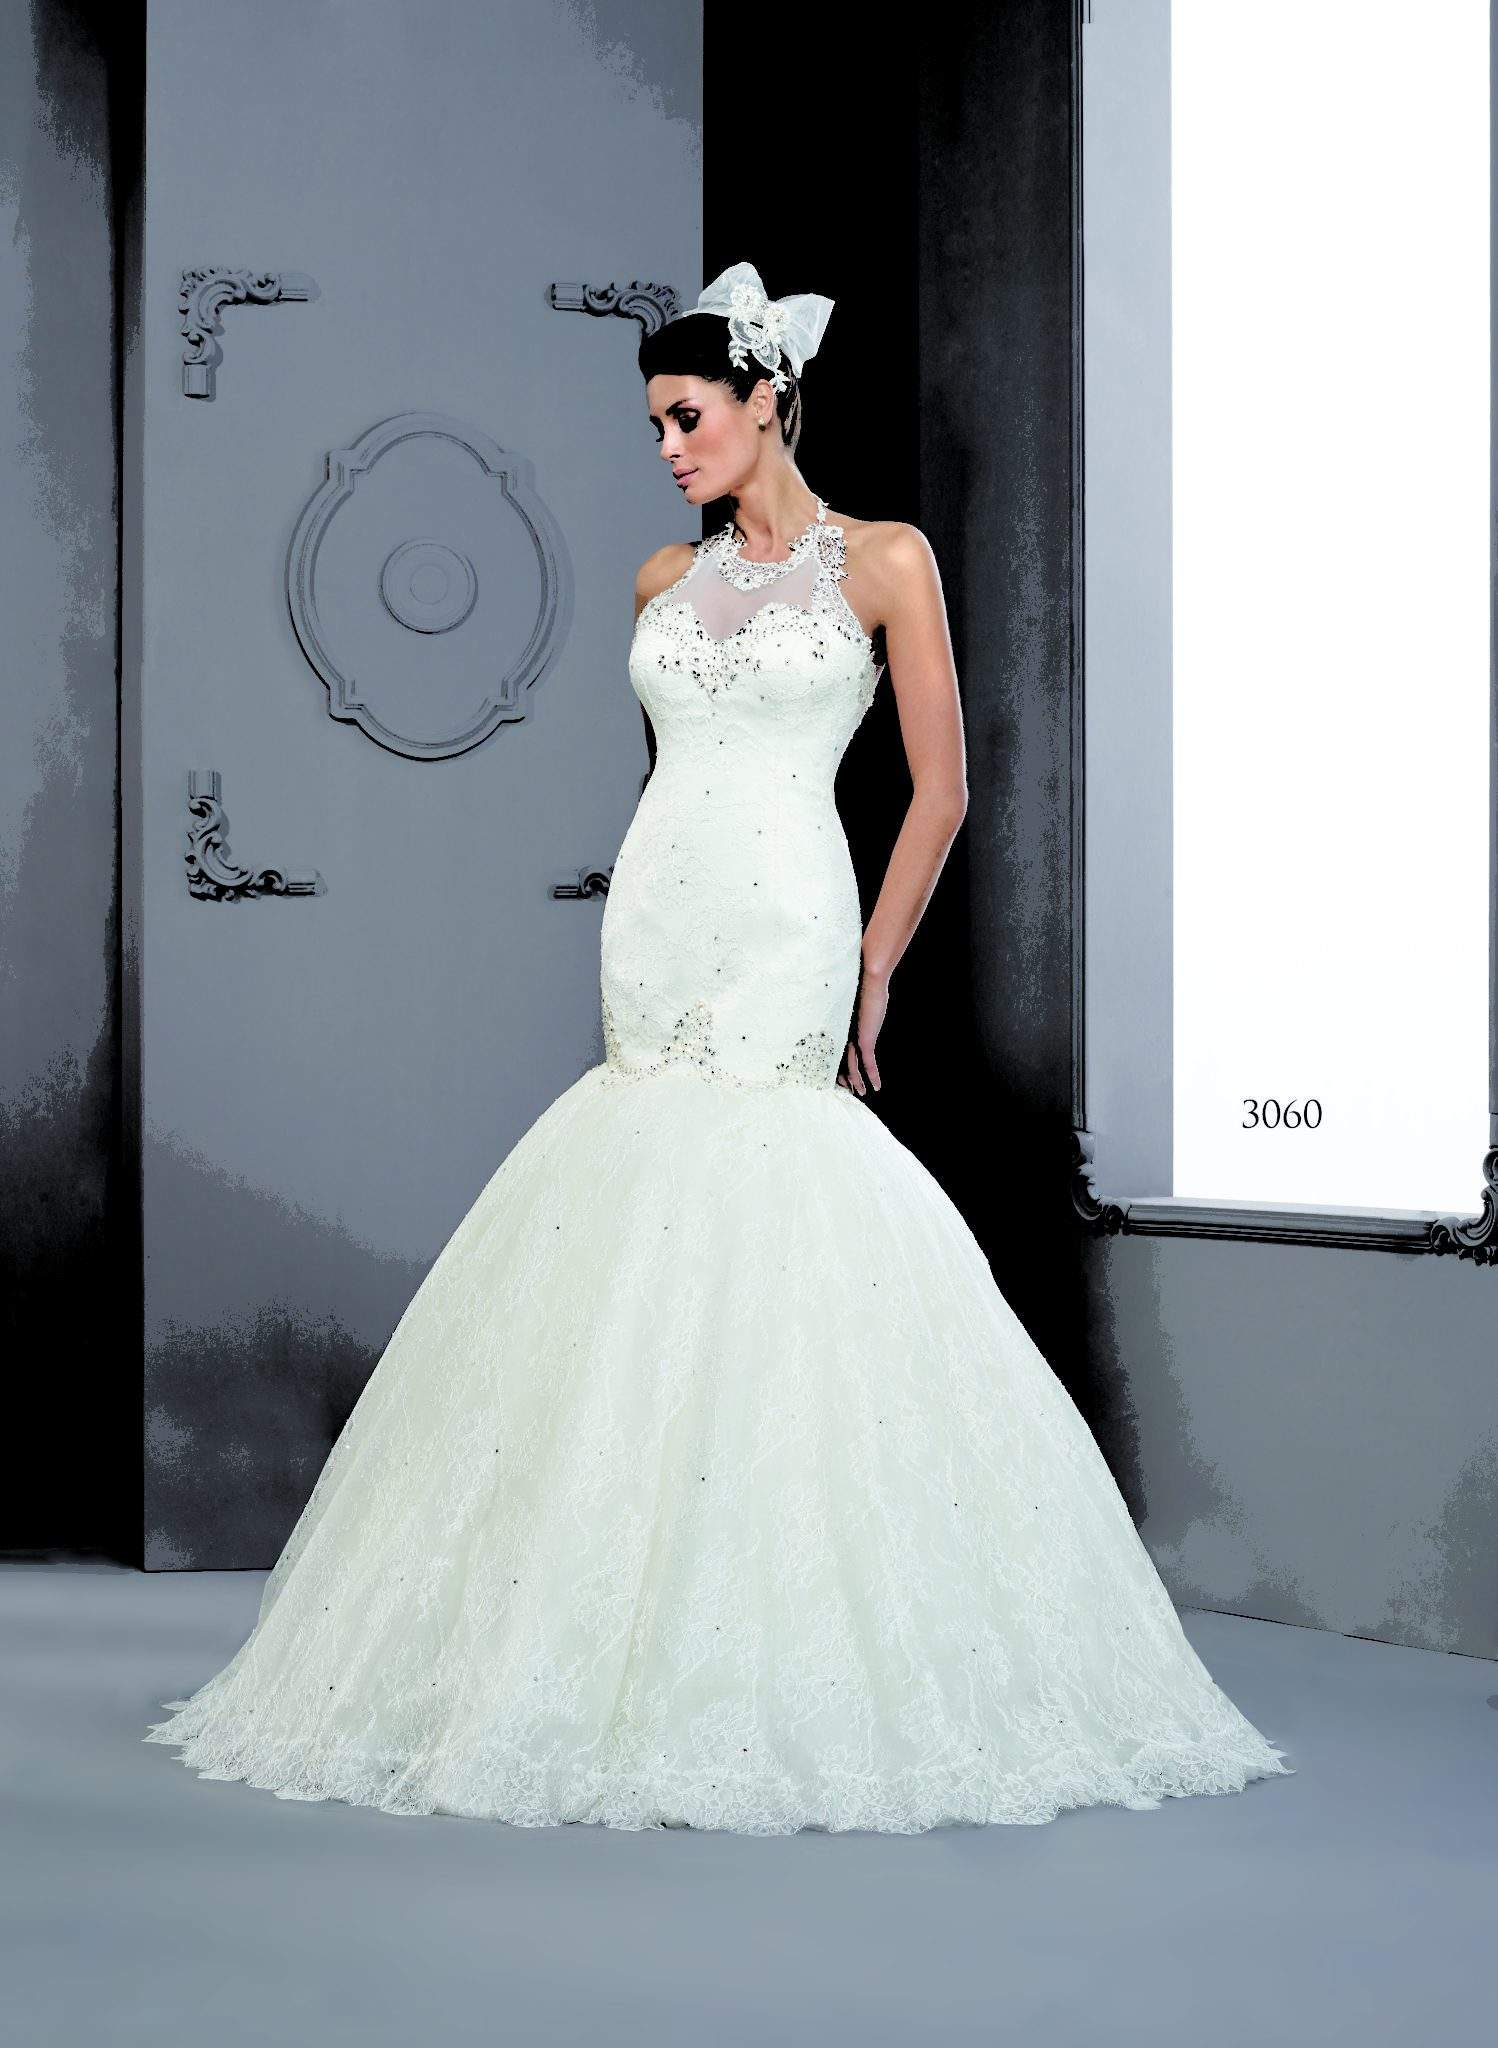 Halter wedding dresses darius cordell fashion ltd halter wedding dresses junglespirit Choice Image